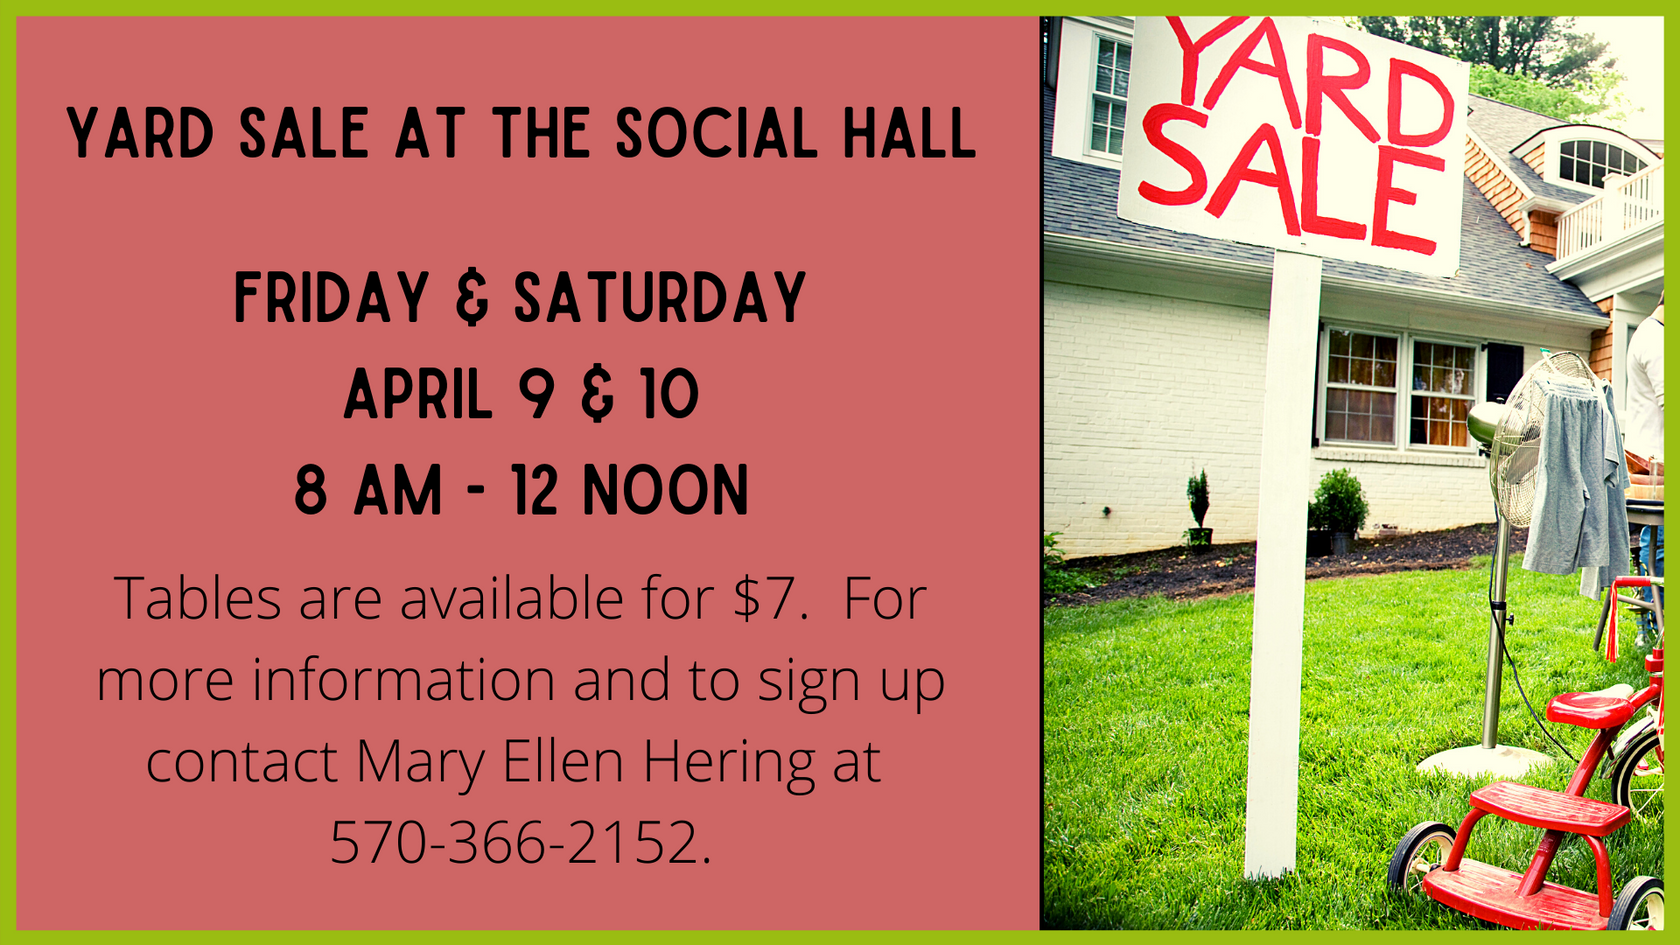 Yard Sale at the Social Hall